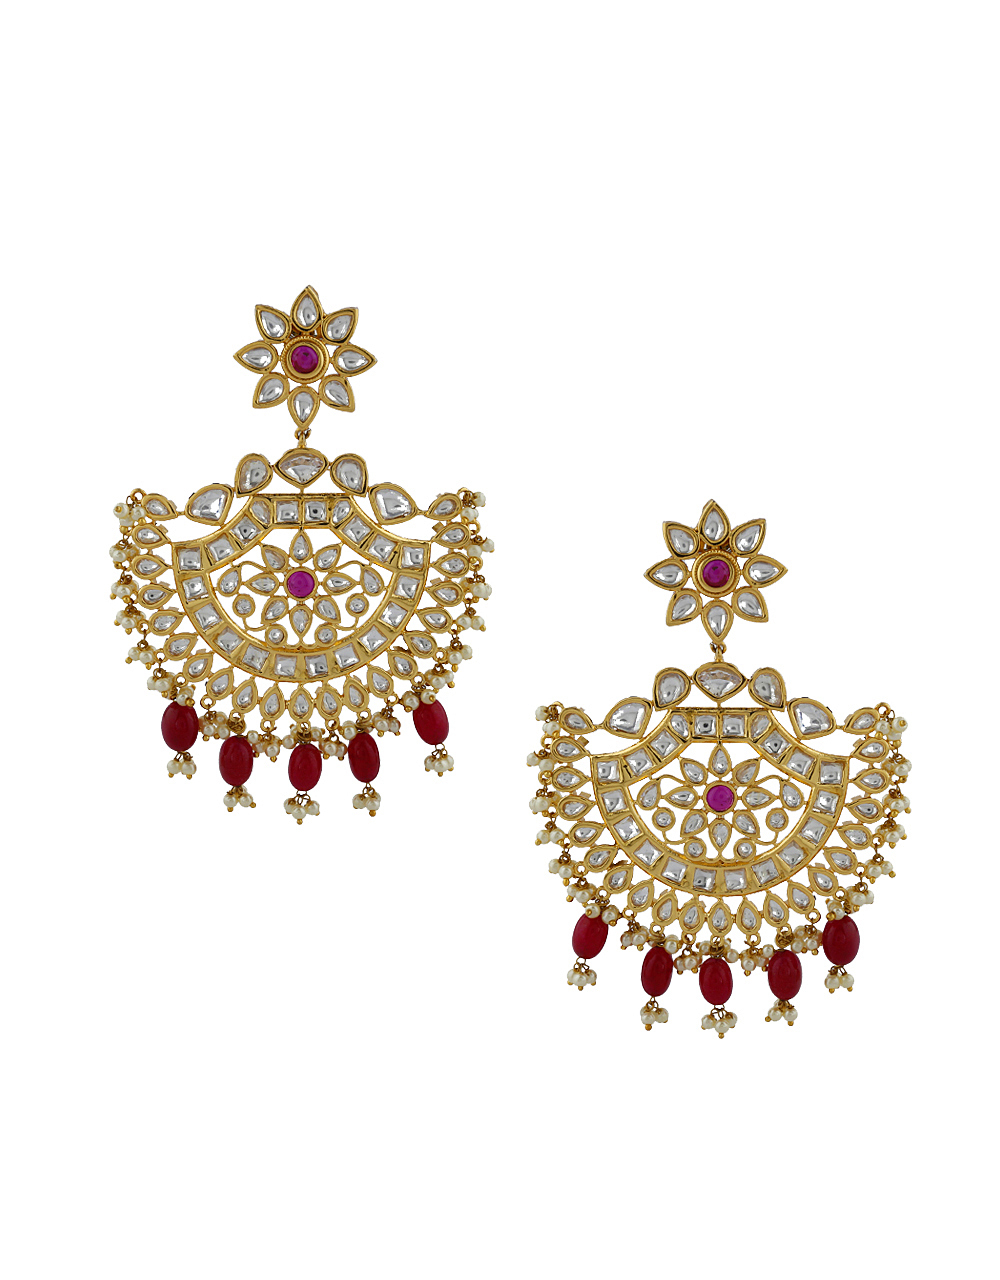 Temple Design Half Circle Droplet With Golden Finishing Earrings Pair